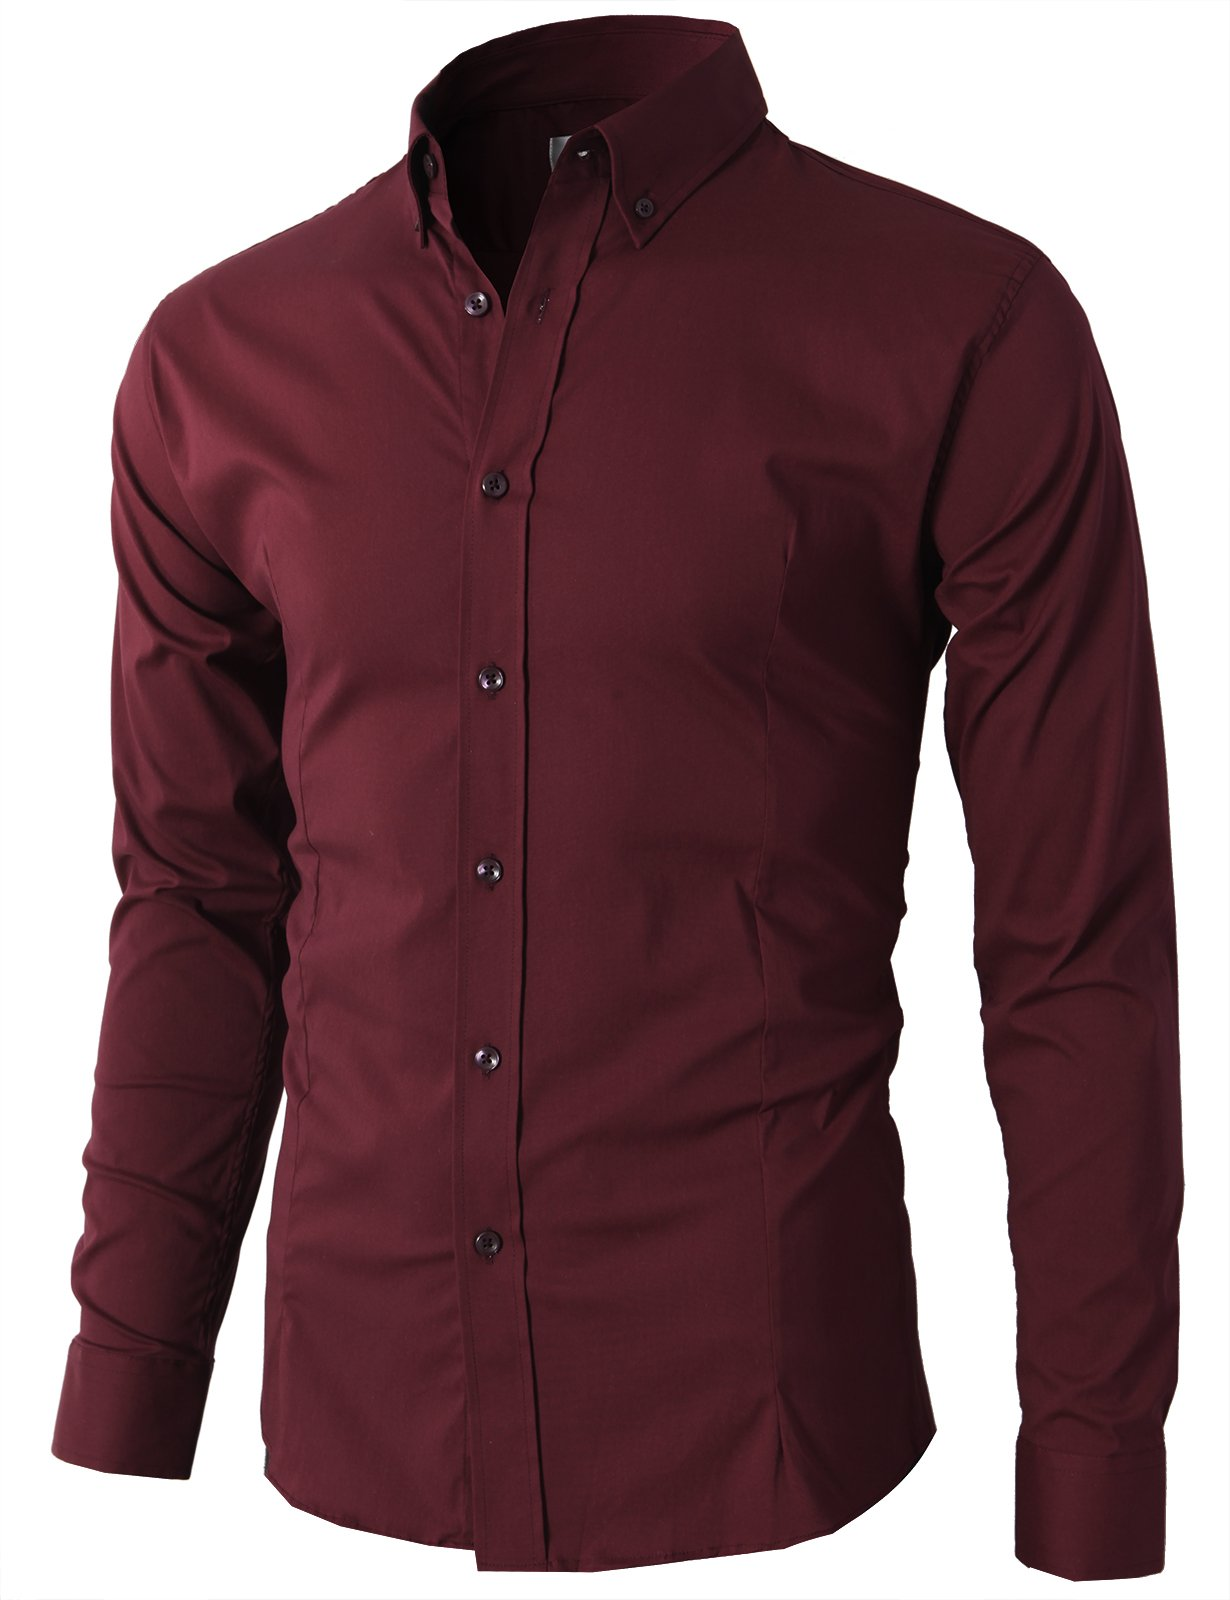 H2H Men's Plus Tamiami Ii Long Sleeve Shirt Wine US S/Asia L (KMTSTL0489)